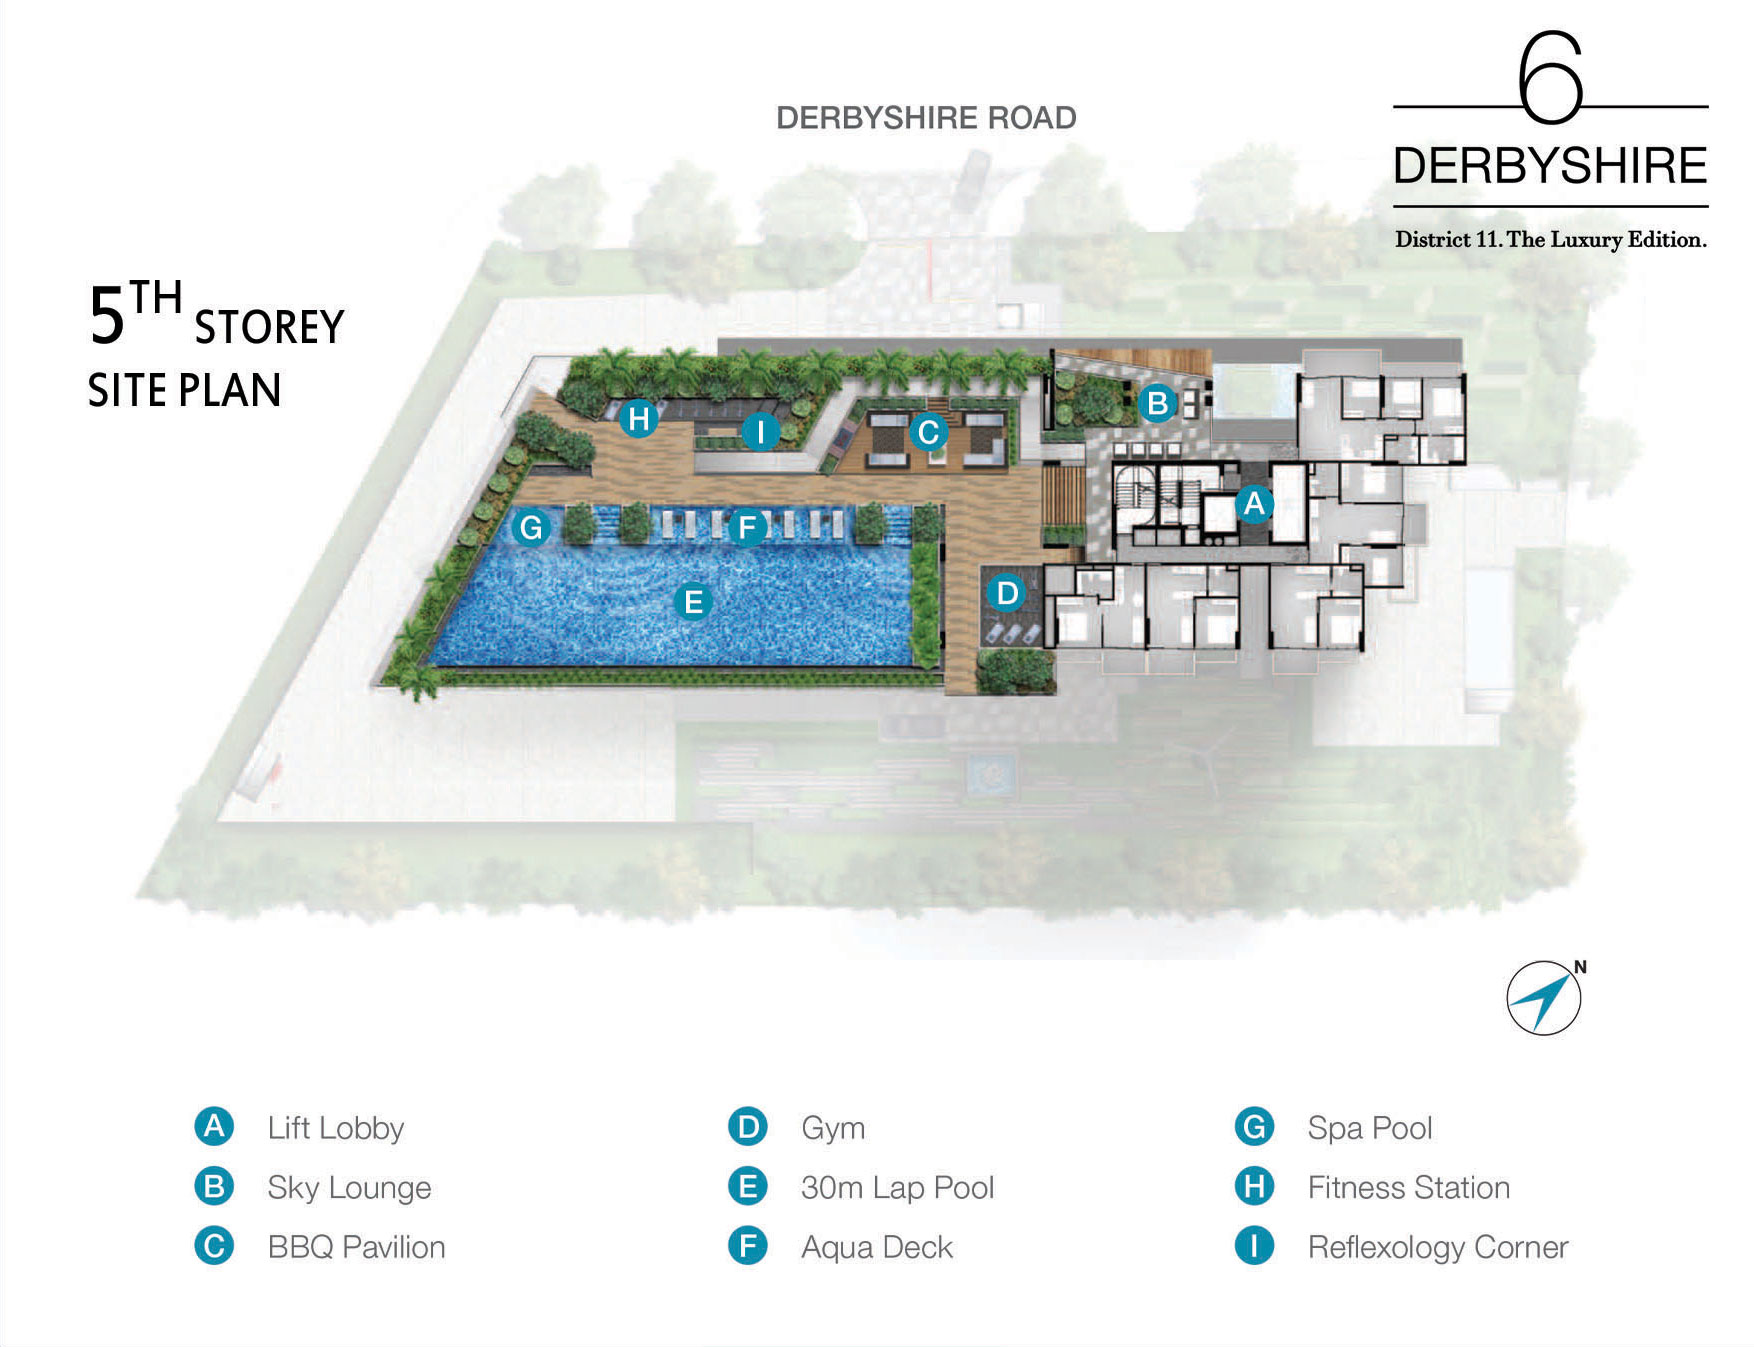 6-Derbyshire-Site-Plan-Level5